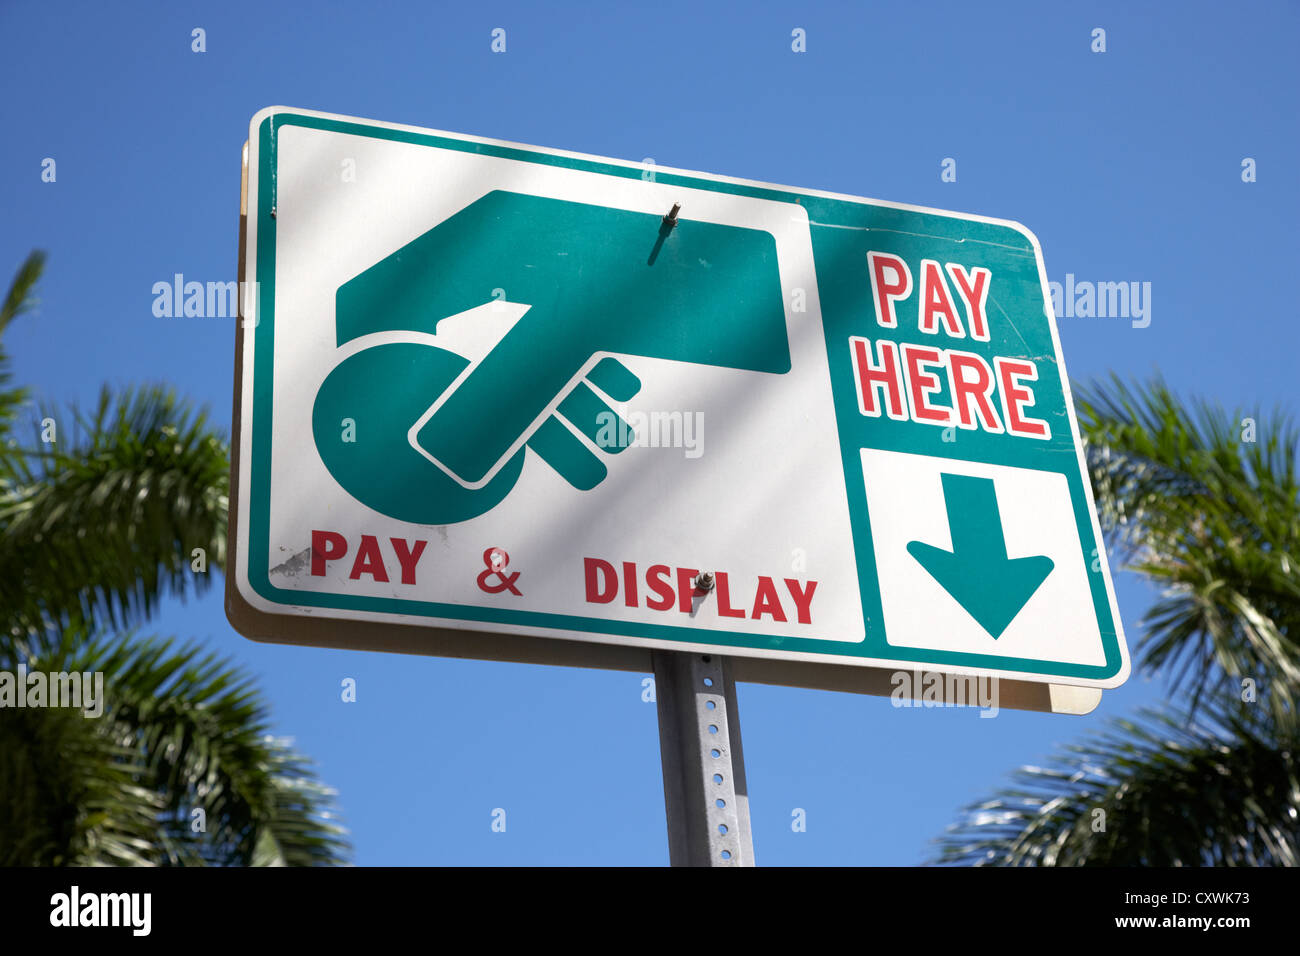 Payez et affichez Payez ici sign in Miami South beach floride usa Photo Stock